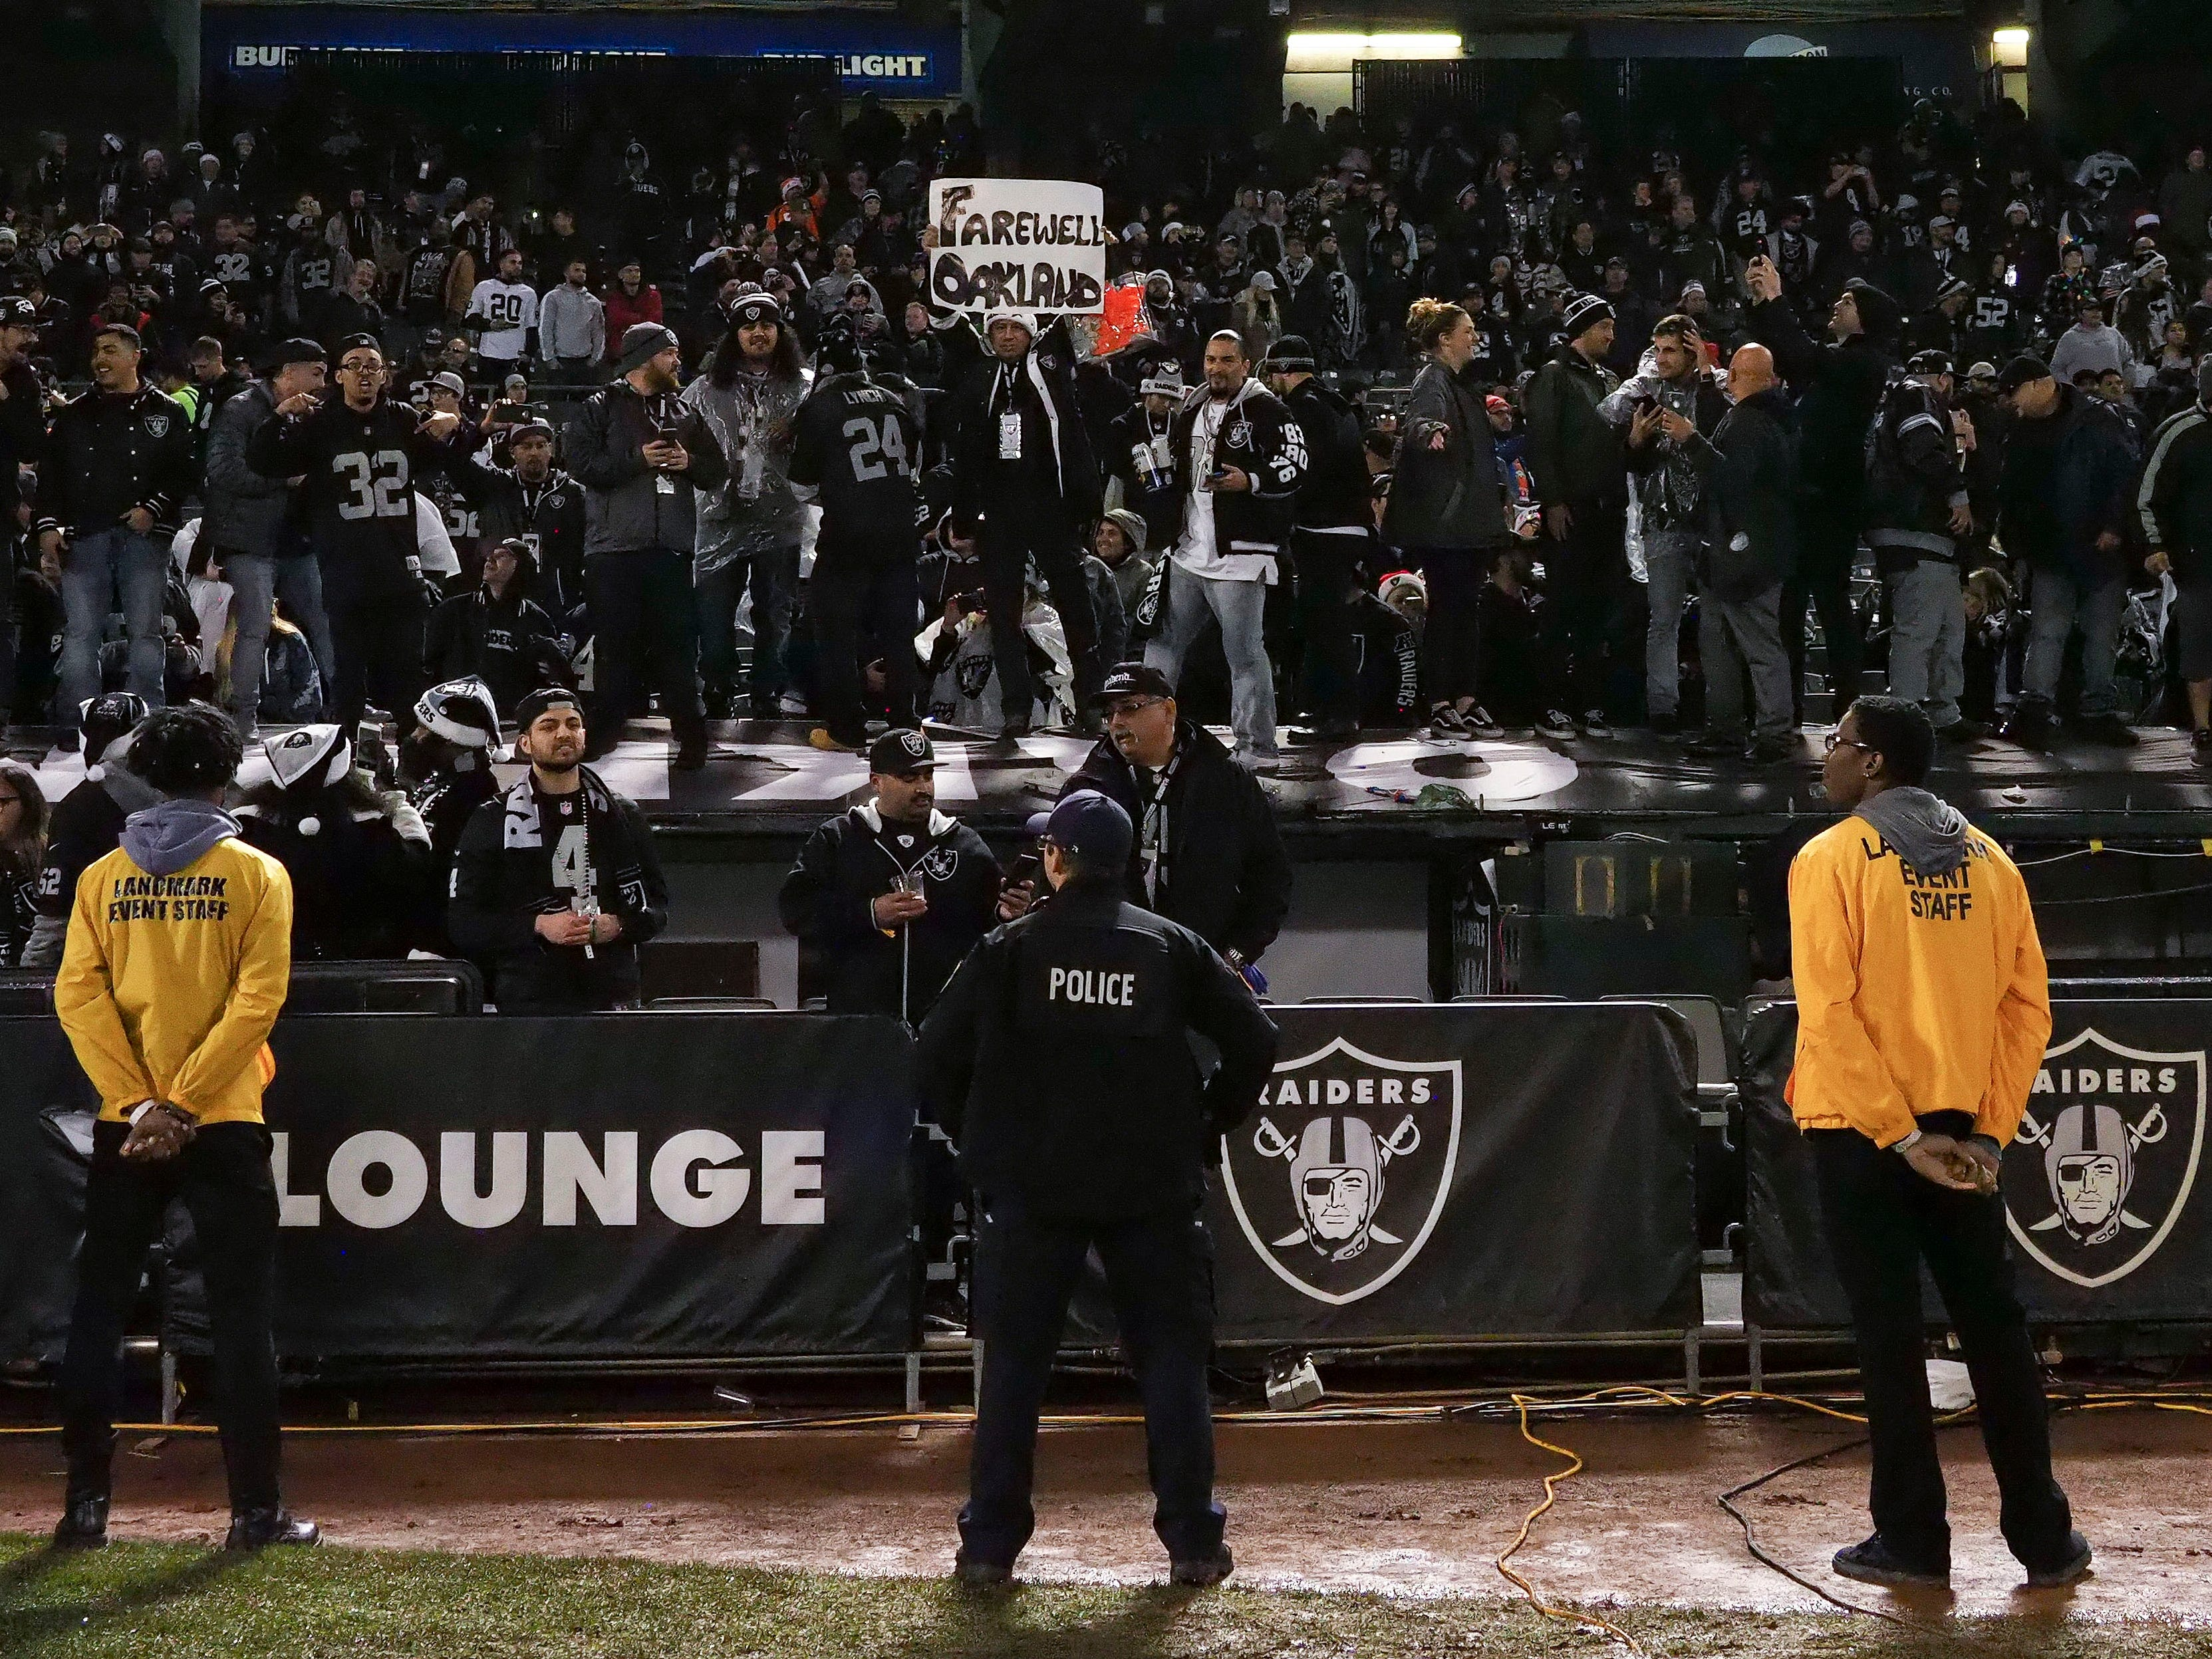 Raiders fans stand on top of the dugout after the game against the Denver Broncos at Oakland Coliseum.